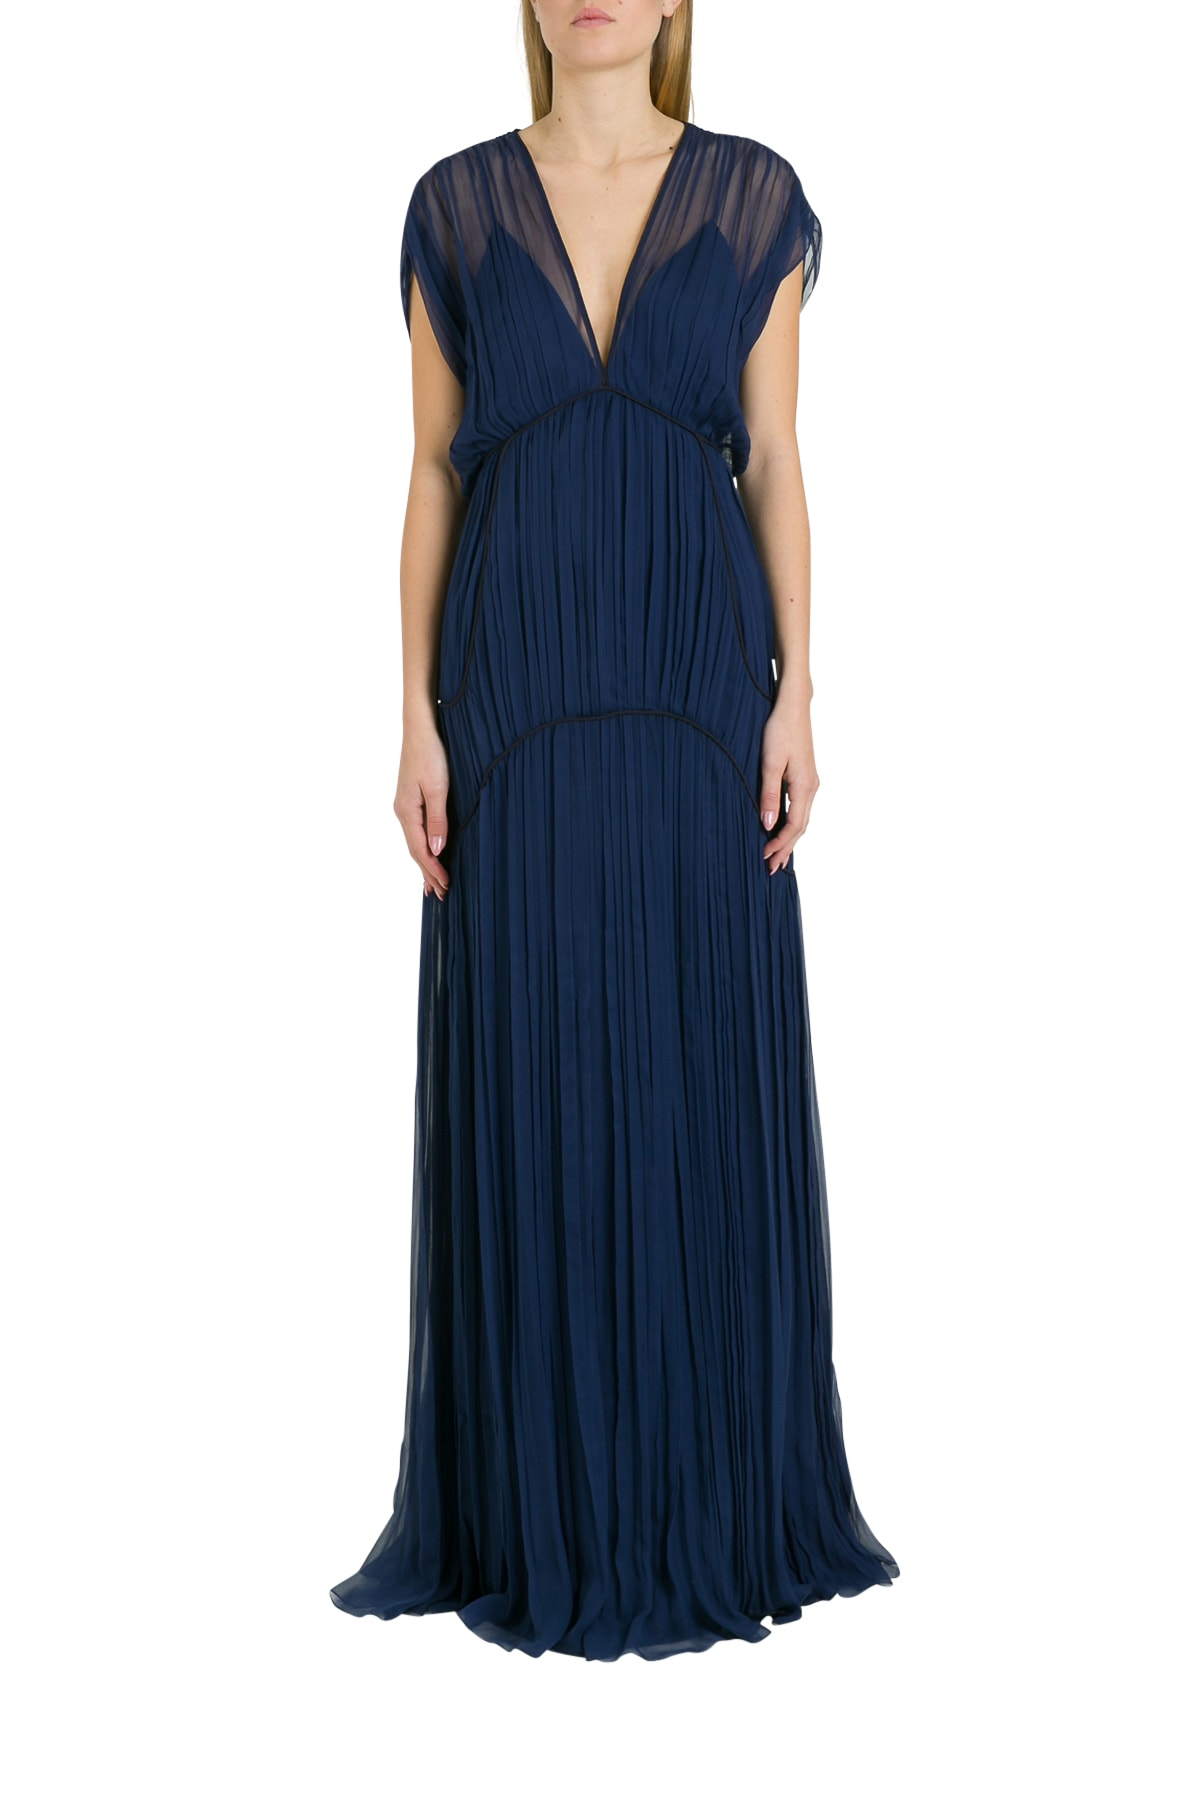 Buy Alberta Ferretti Empire Waist Maxi Dress online, shop Alberta Ferretti with free shipping